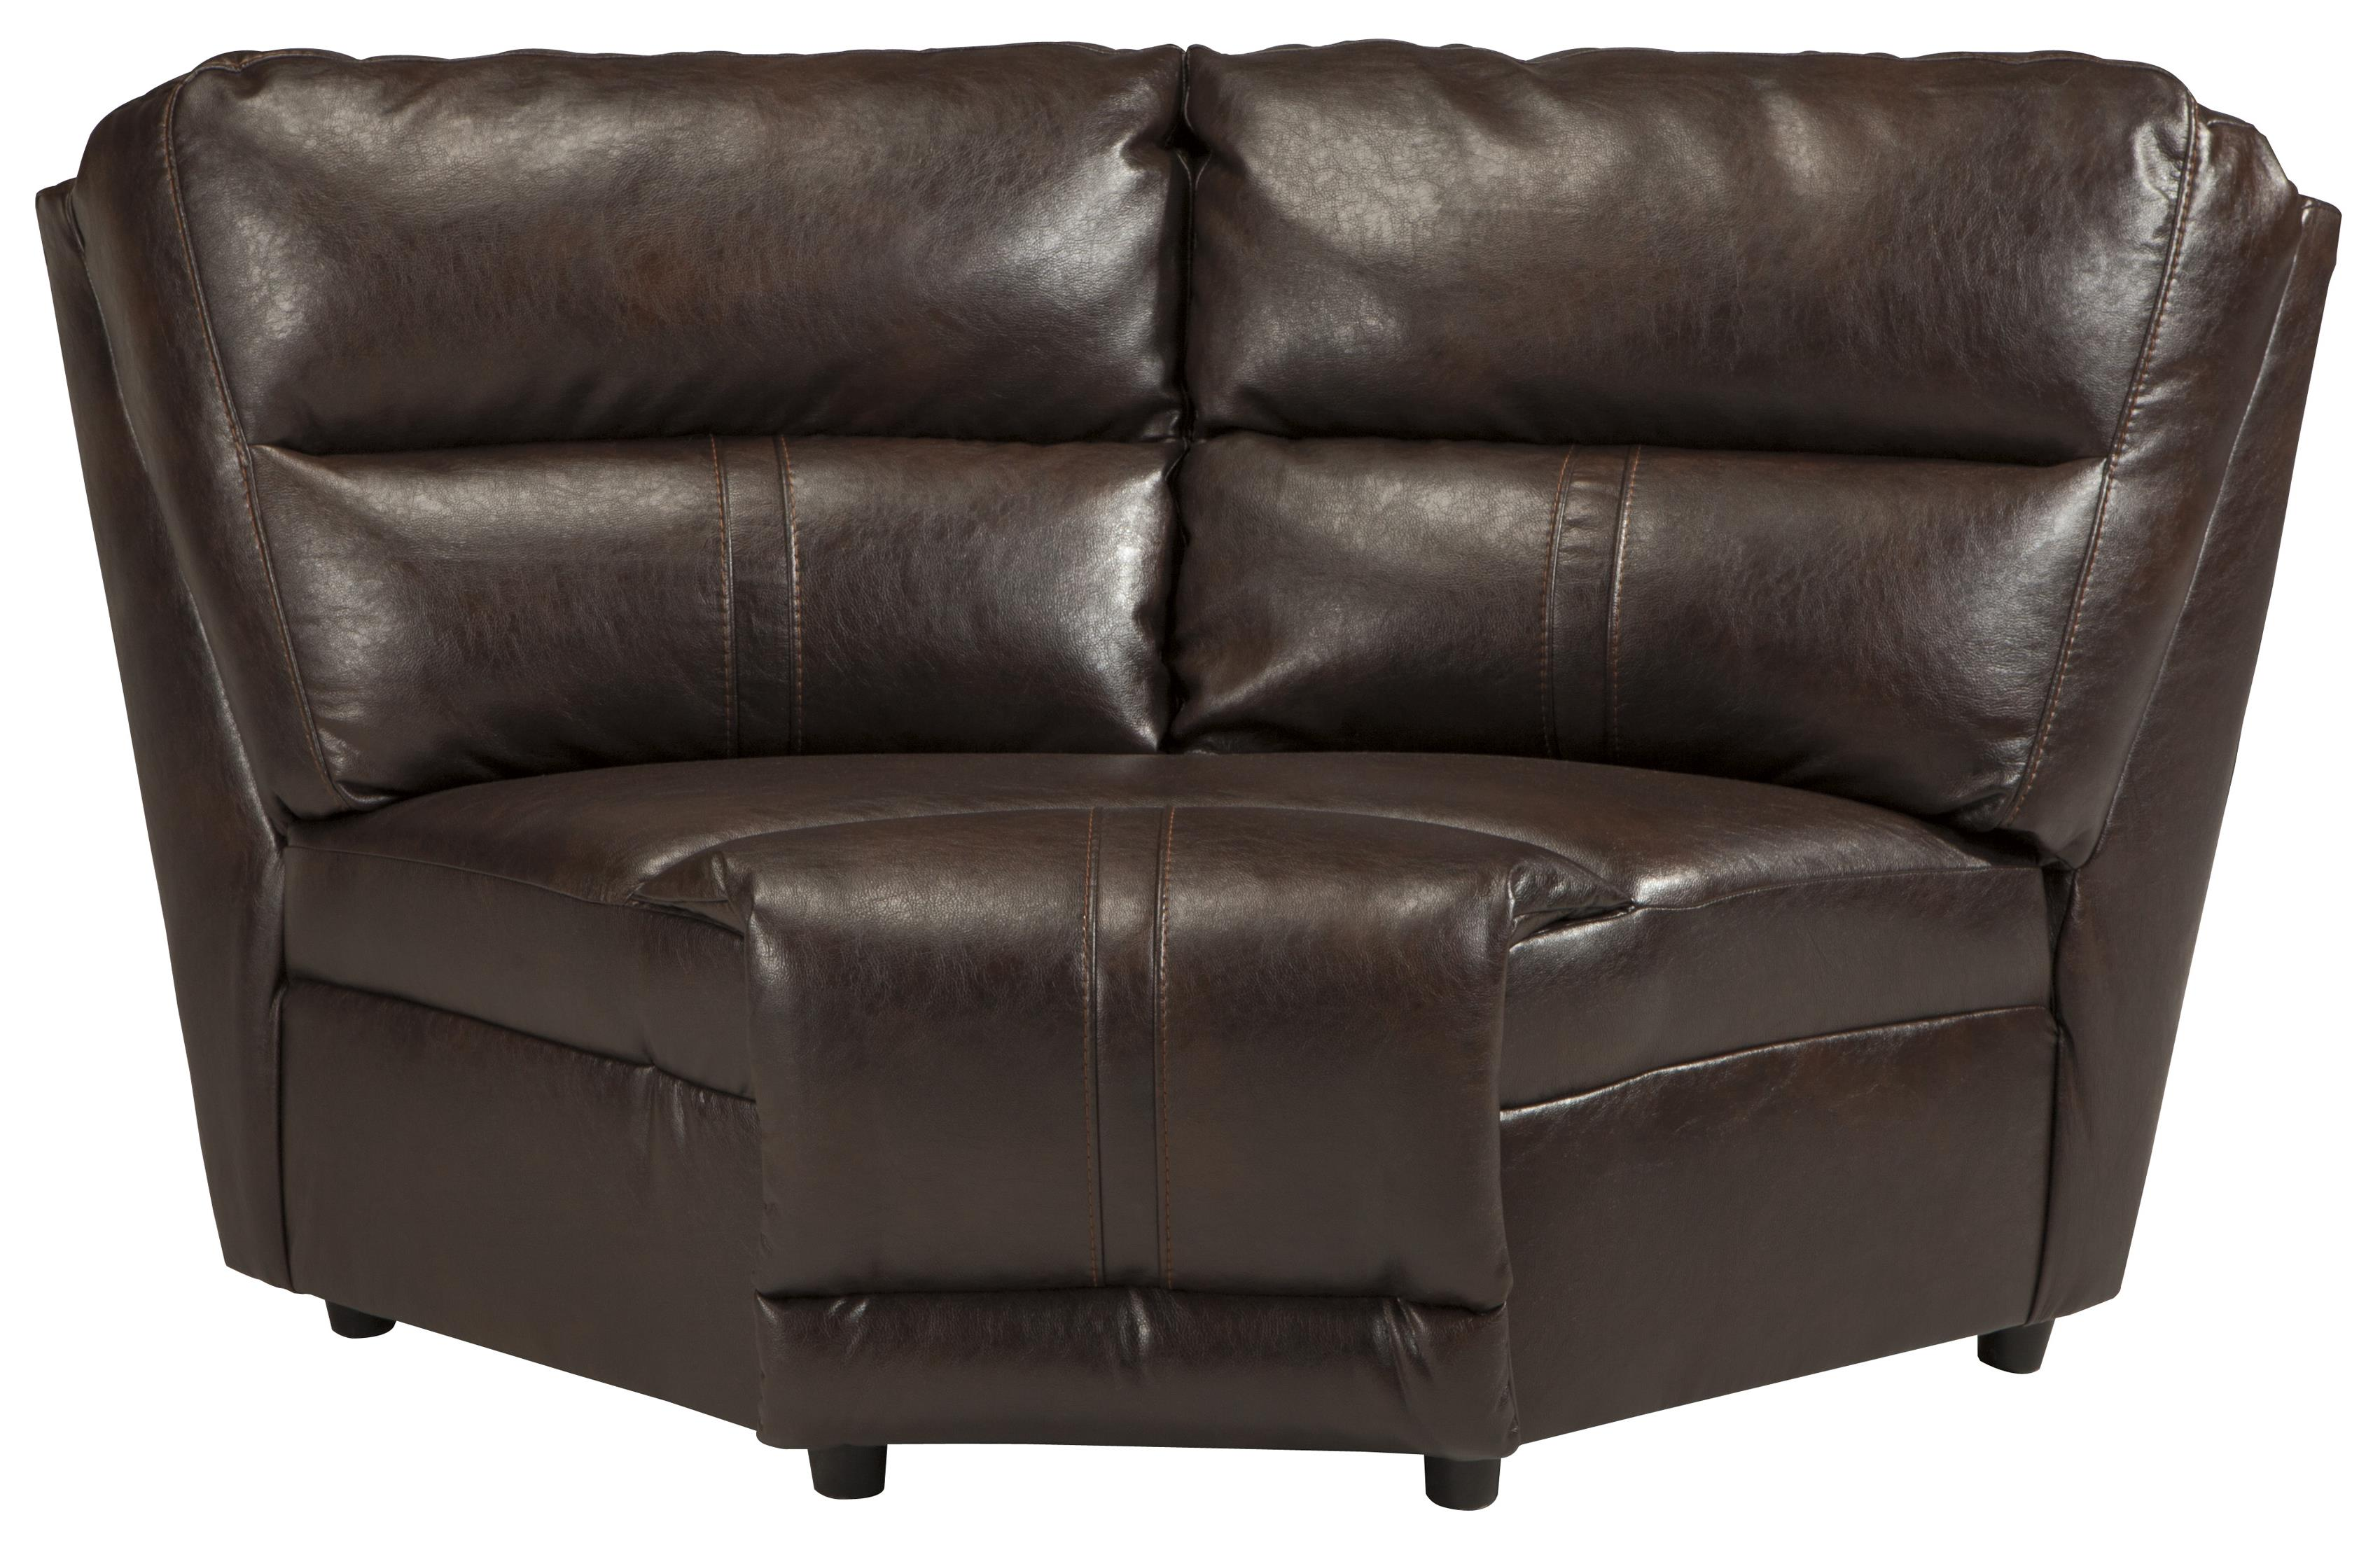 3-Piece Reclining Sectional  sc 1 st  Wolf Furniture & 3-Piece Reclining Sectional by Benchcraft | Wolf and Gardiner Wolf ... islam-shia.org